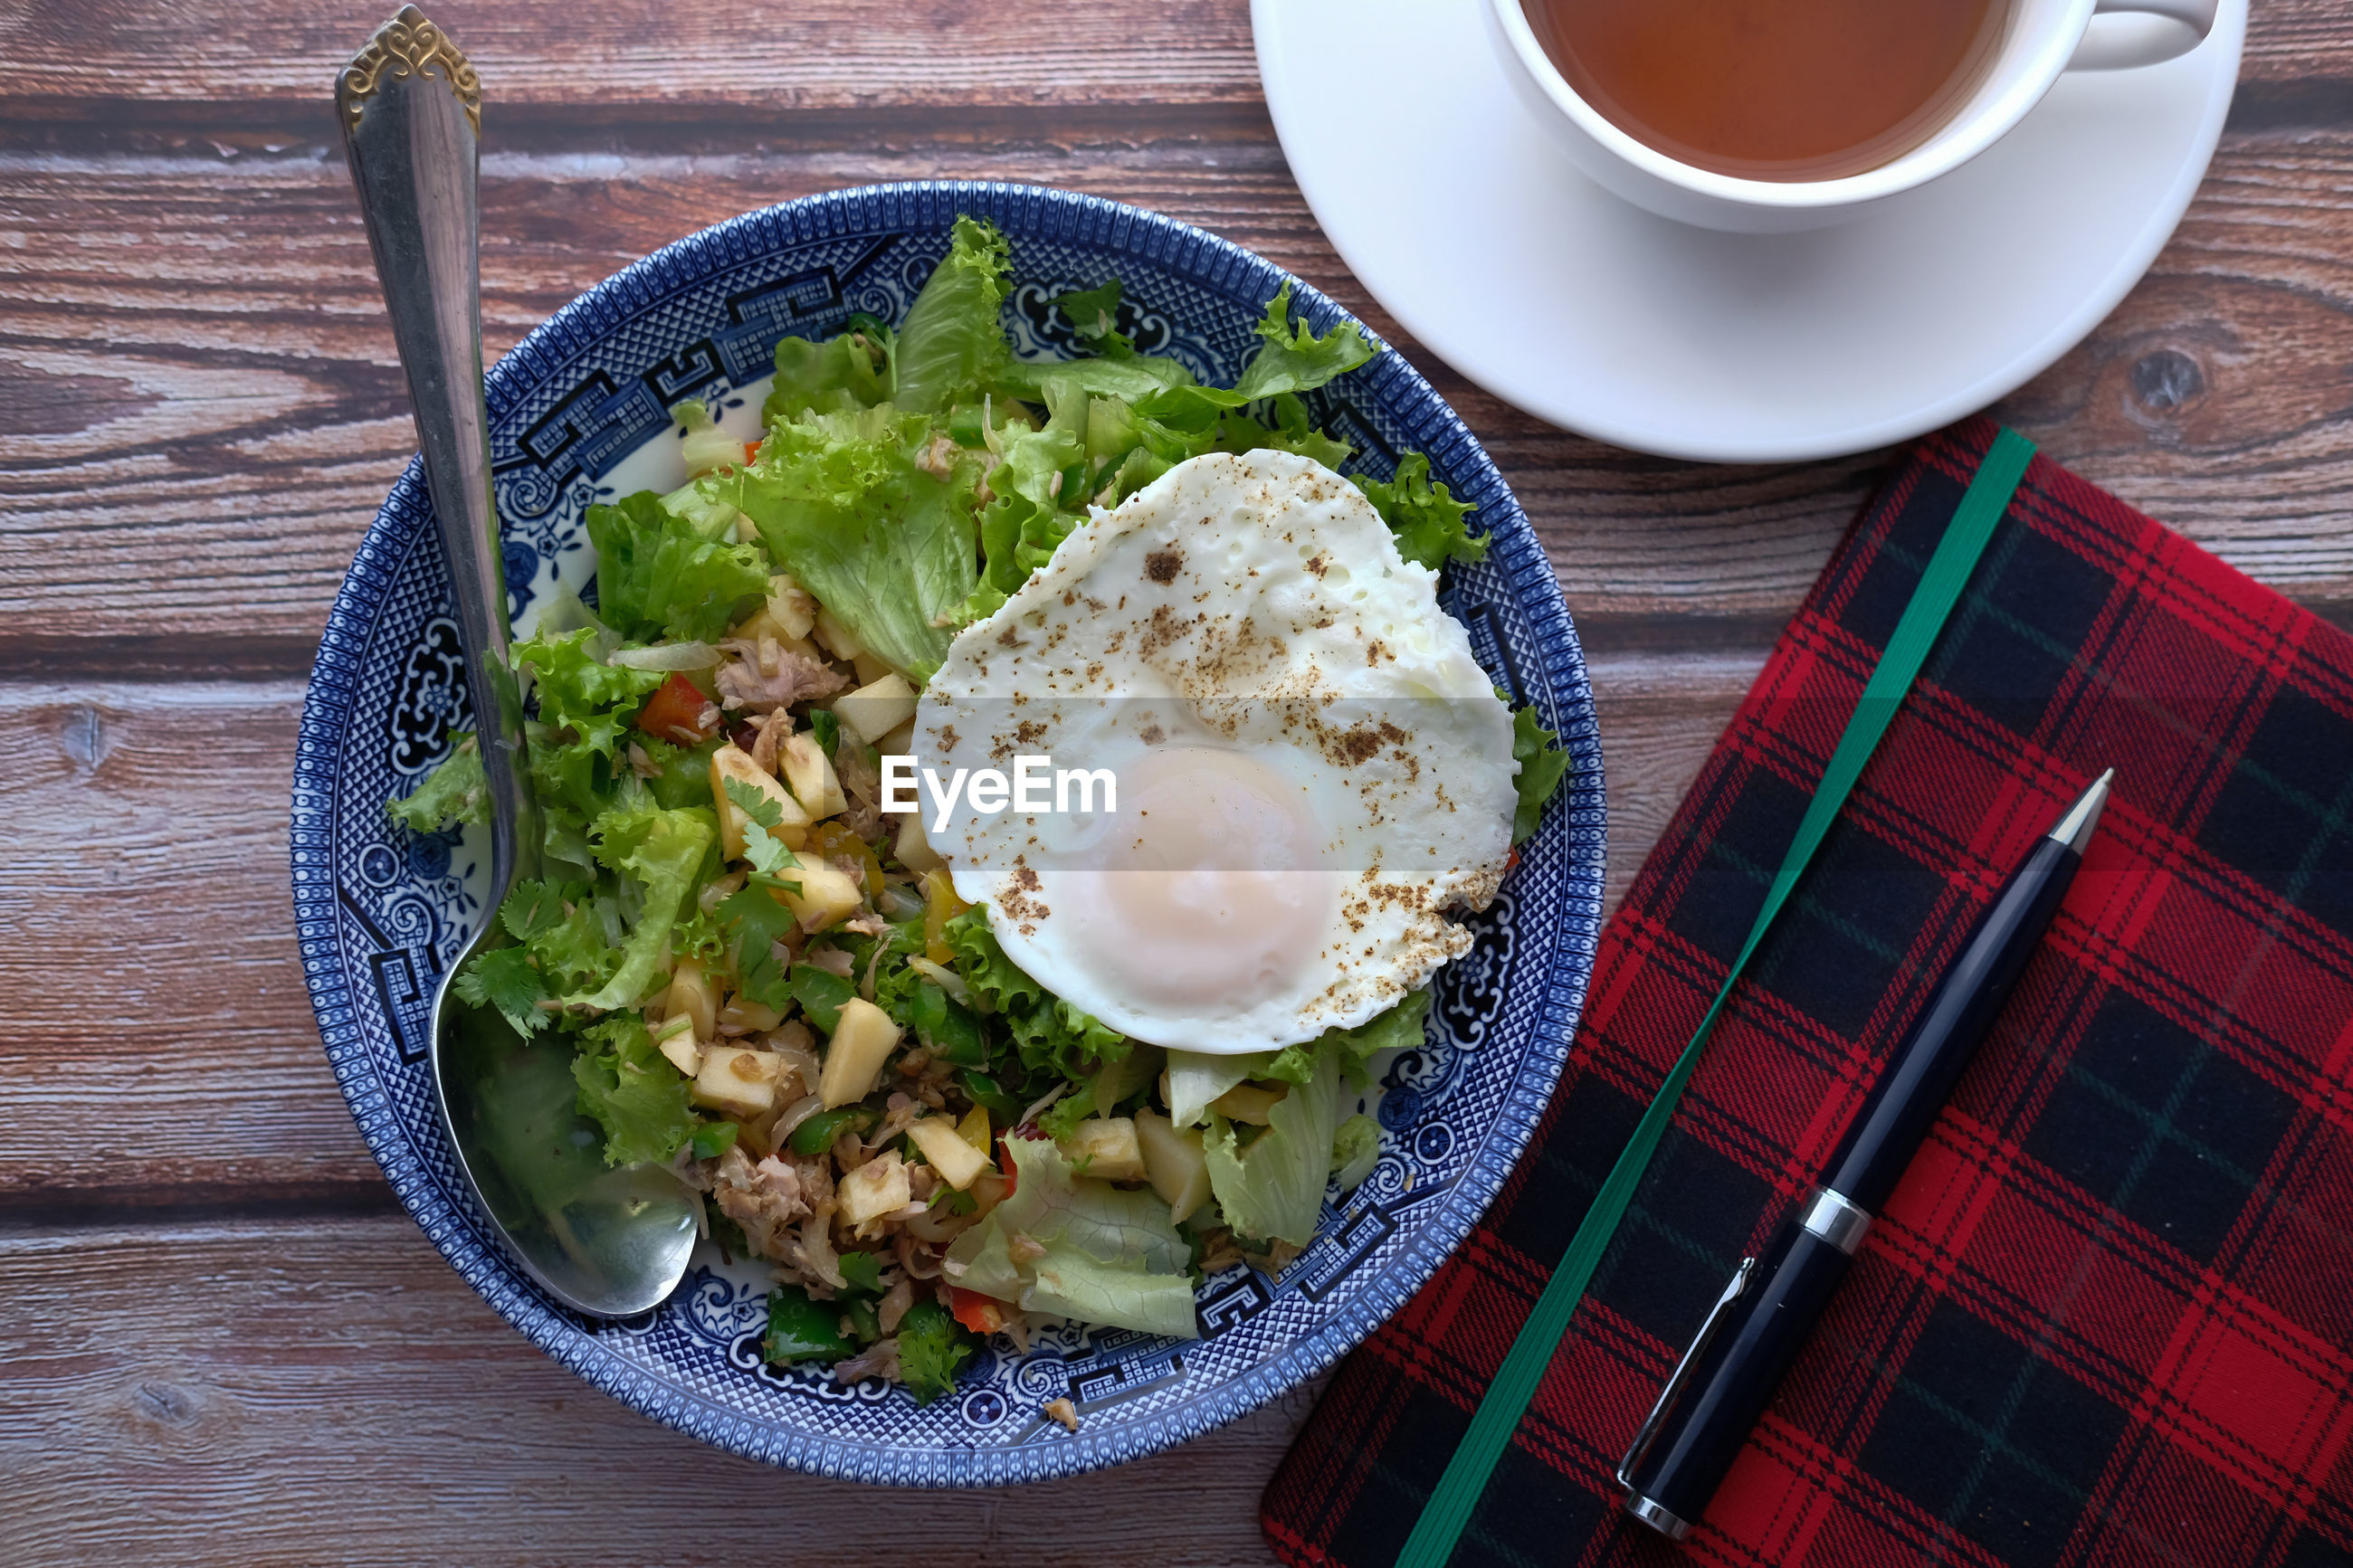 Egg and salad in a plate